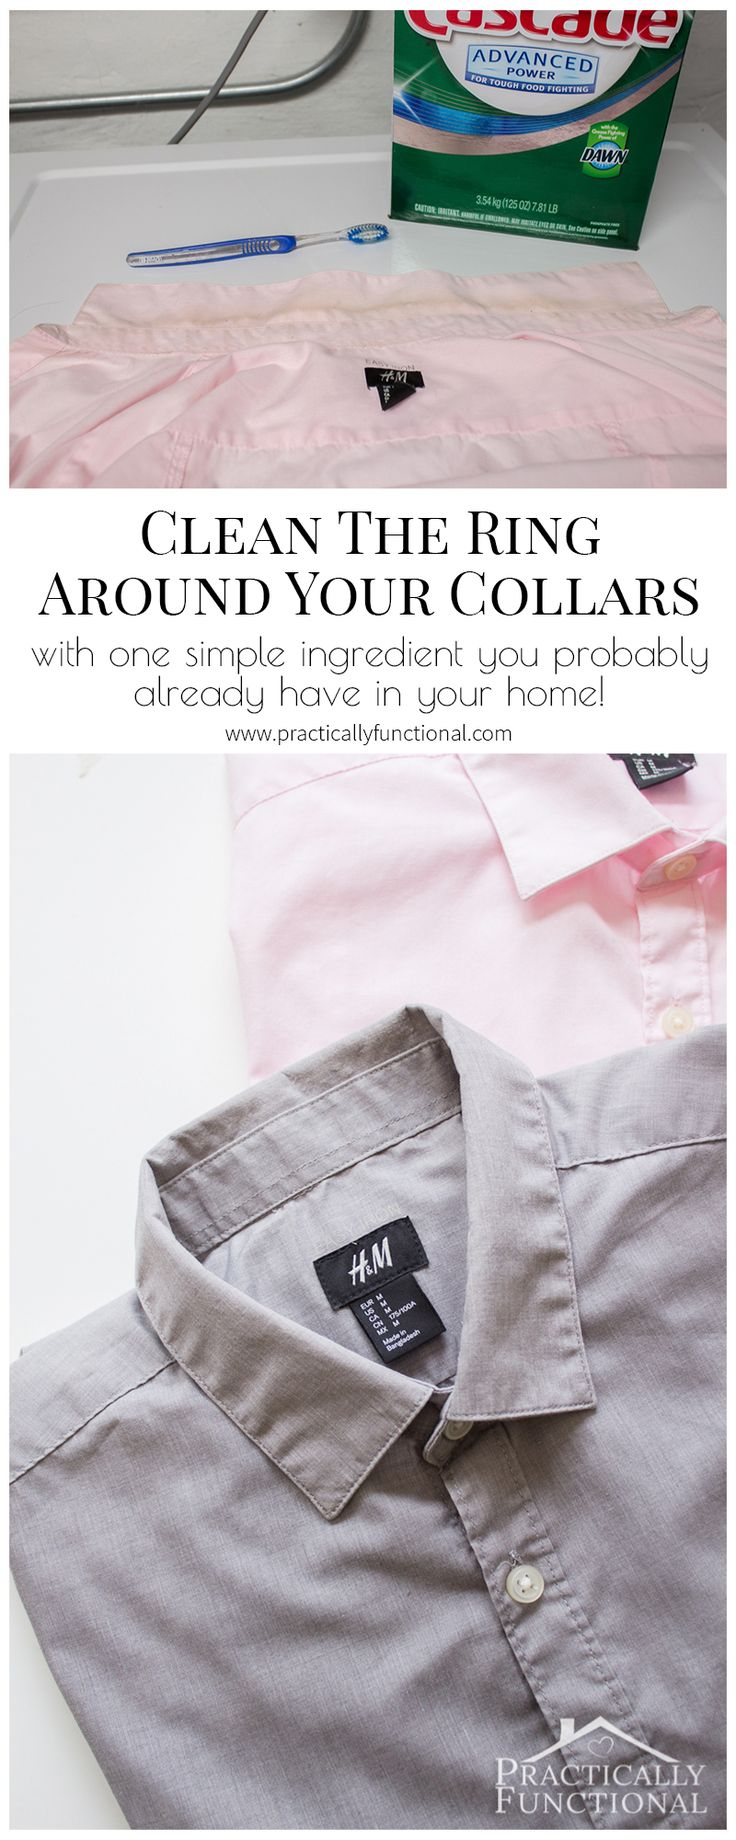 This shows you how to clean the ring around the collar of your dress shirts!